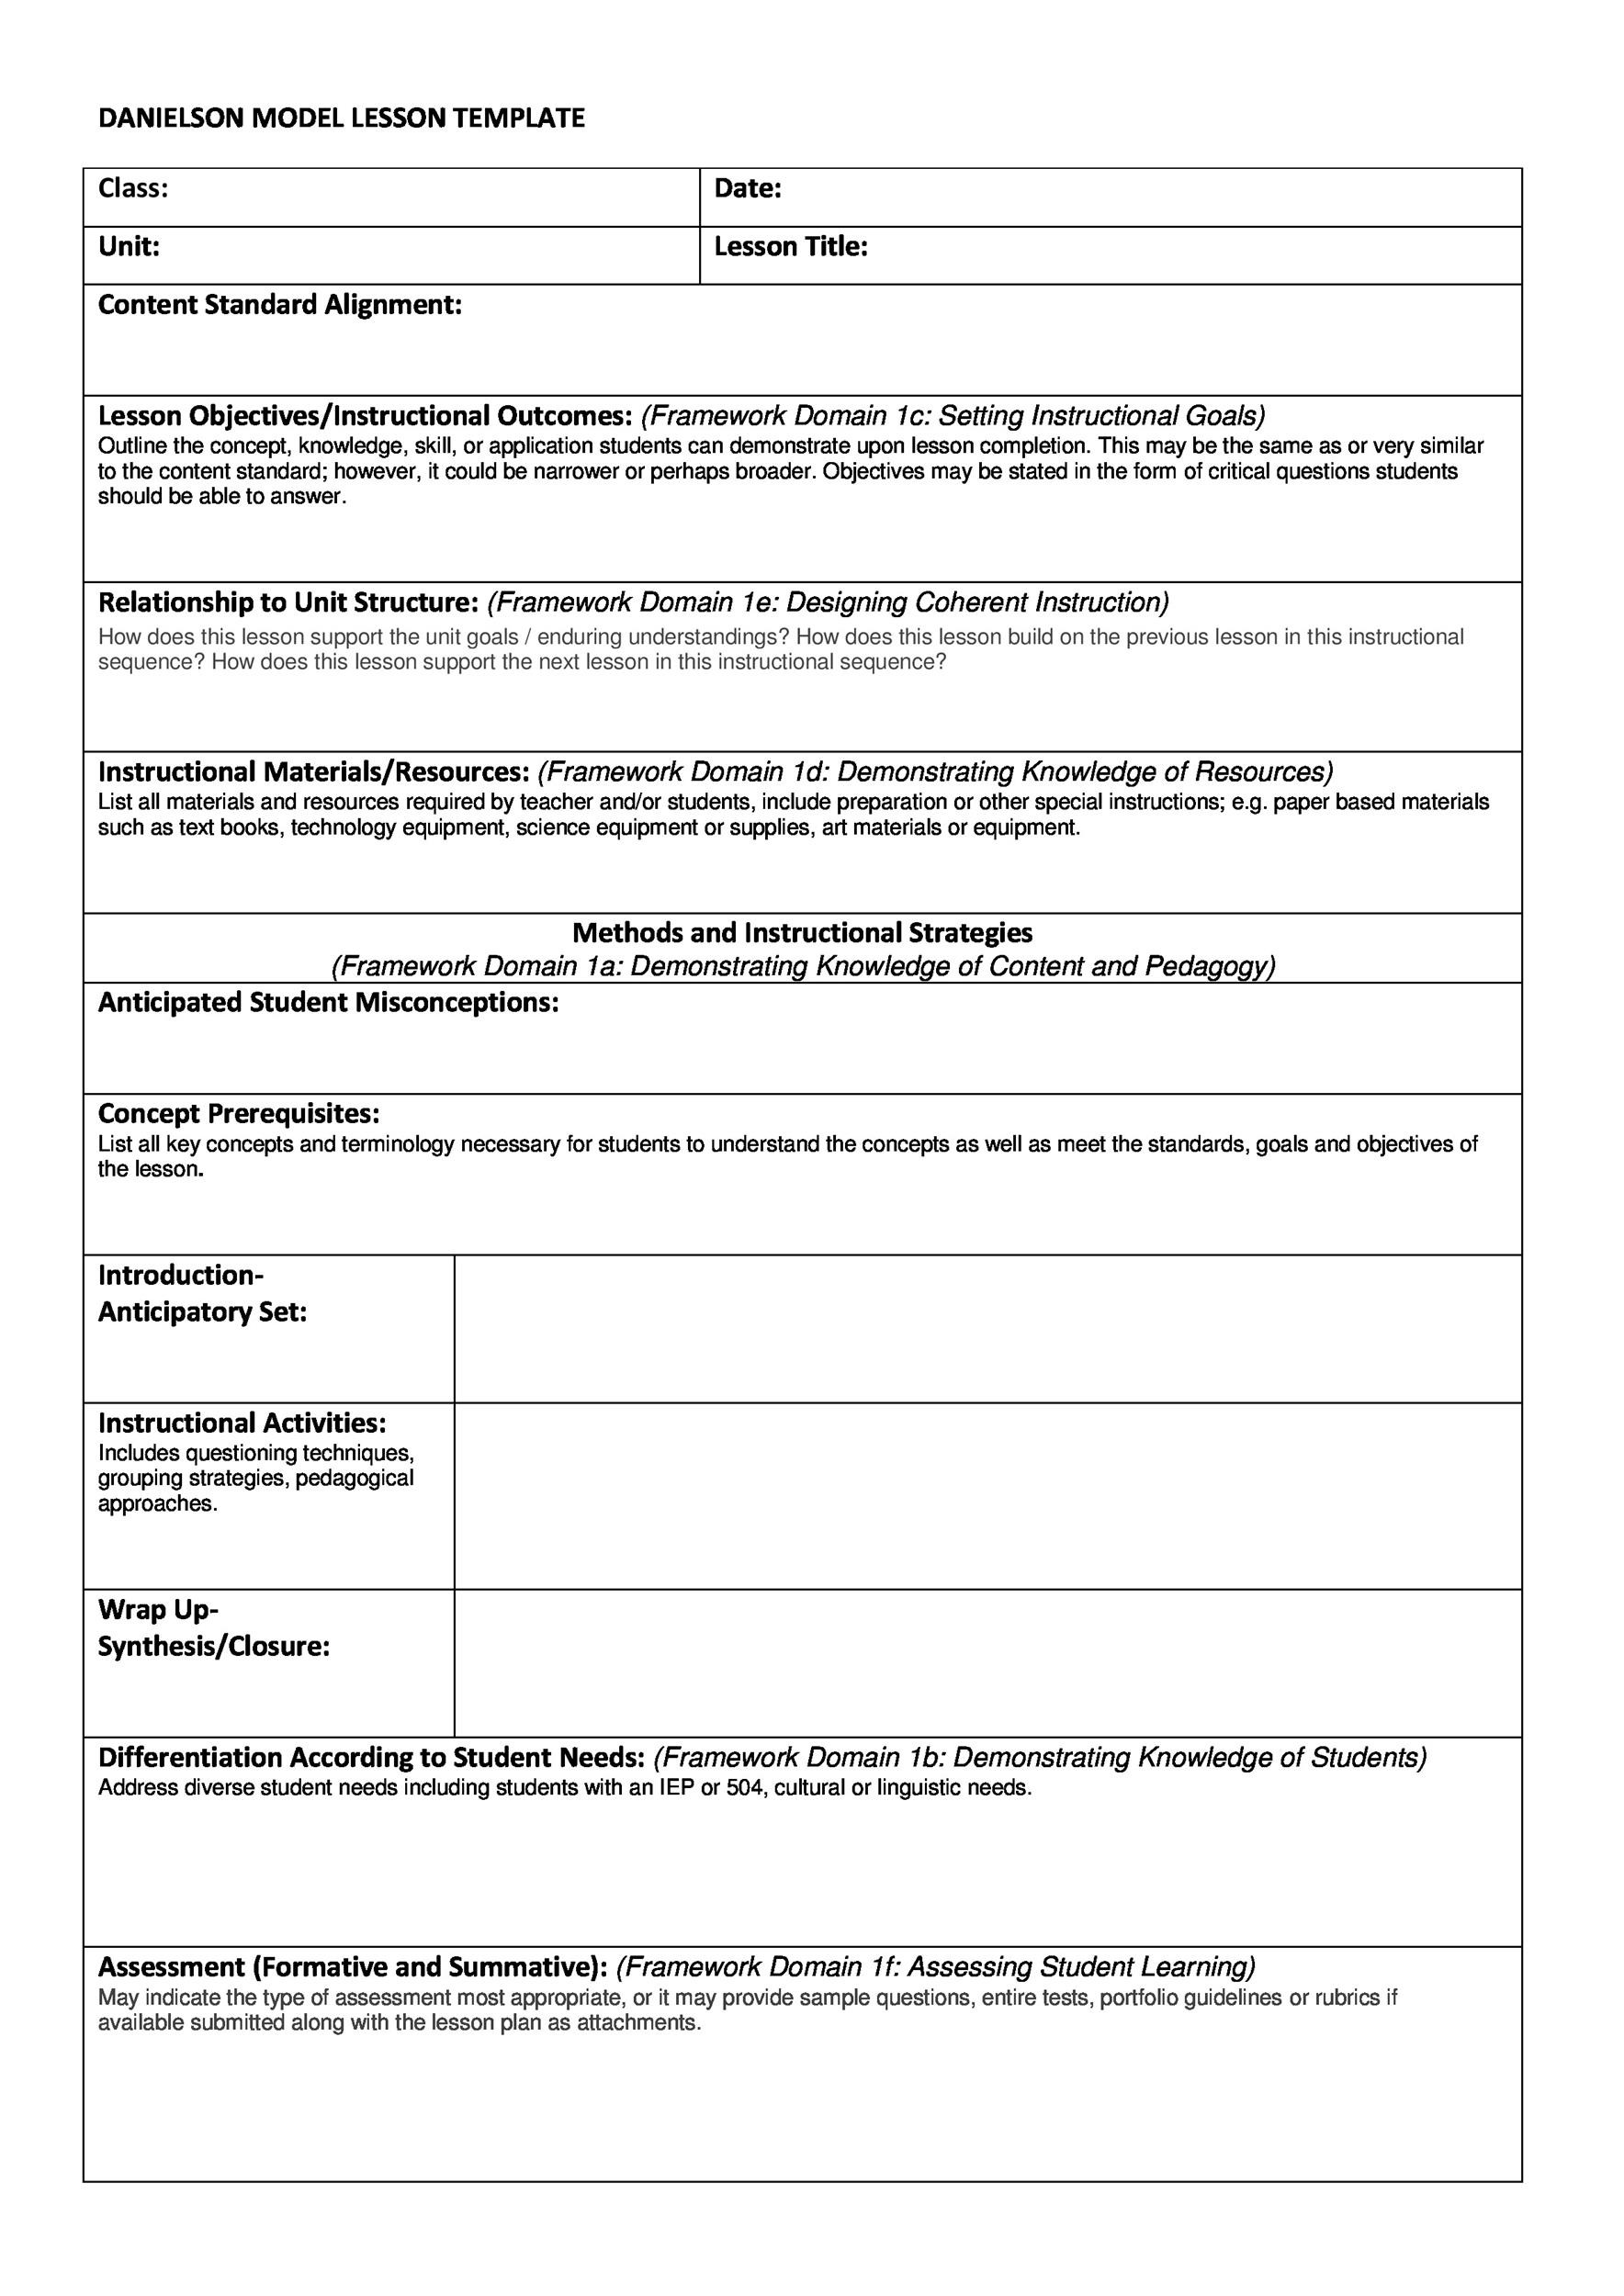 FREE Lesson Plan Templates Common Core Preschool Weekly - Free weekly lesson plan template